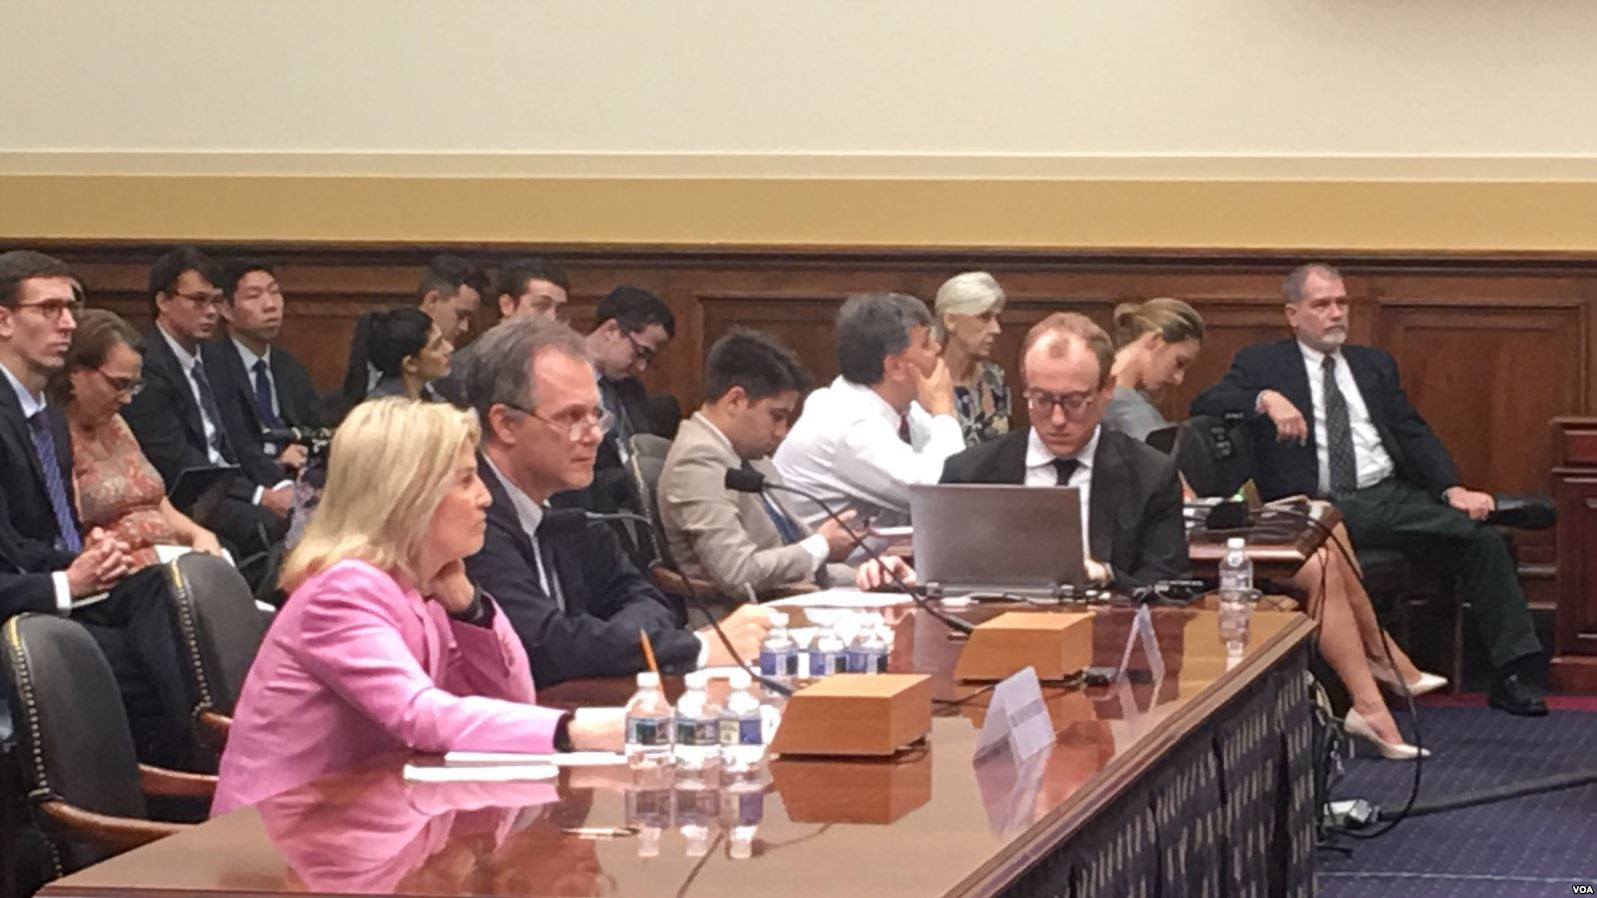 VOA Contributor Greta Van Susteren Spotlights the Rohingya Refugee Crisis in Testimony before the House Foreign Affairs Committee